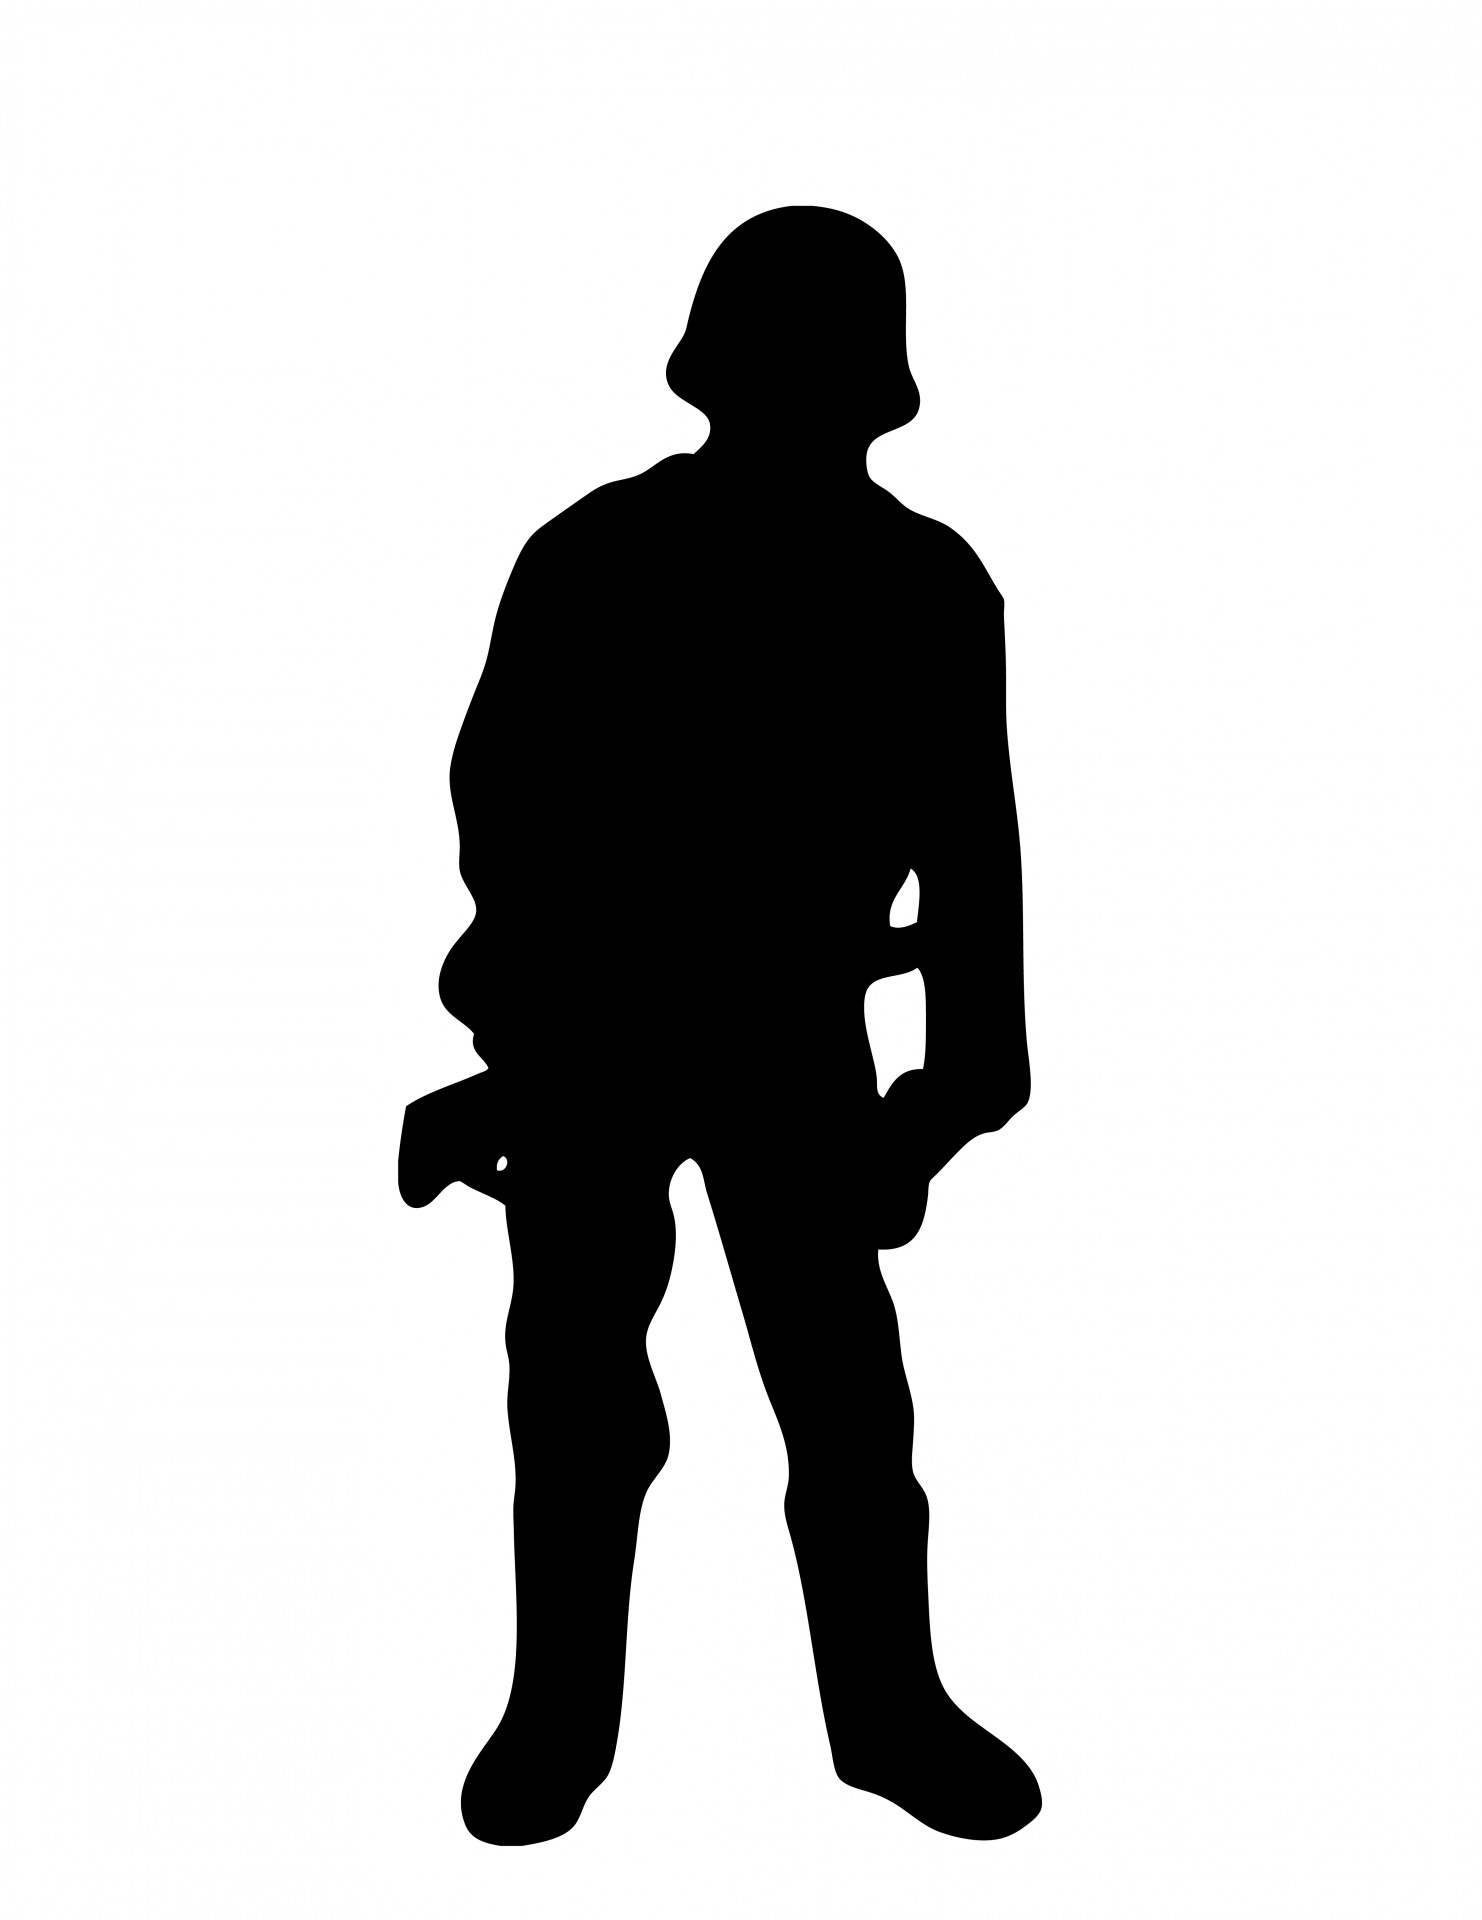 1482x1920 Soldier Silhouette Free Stock Photo